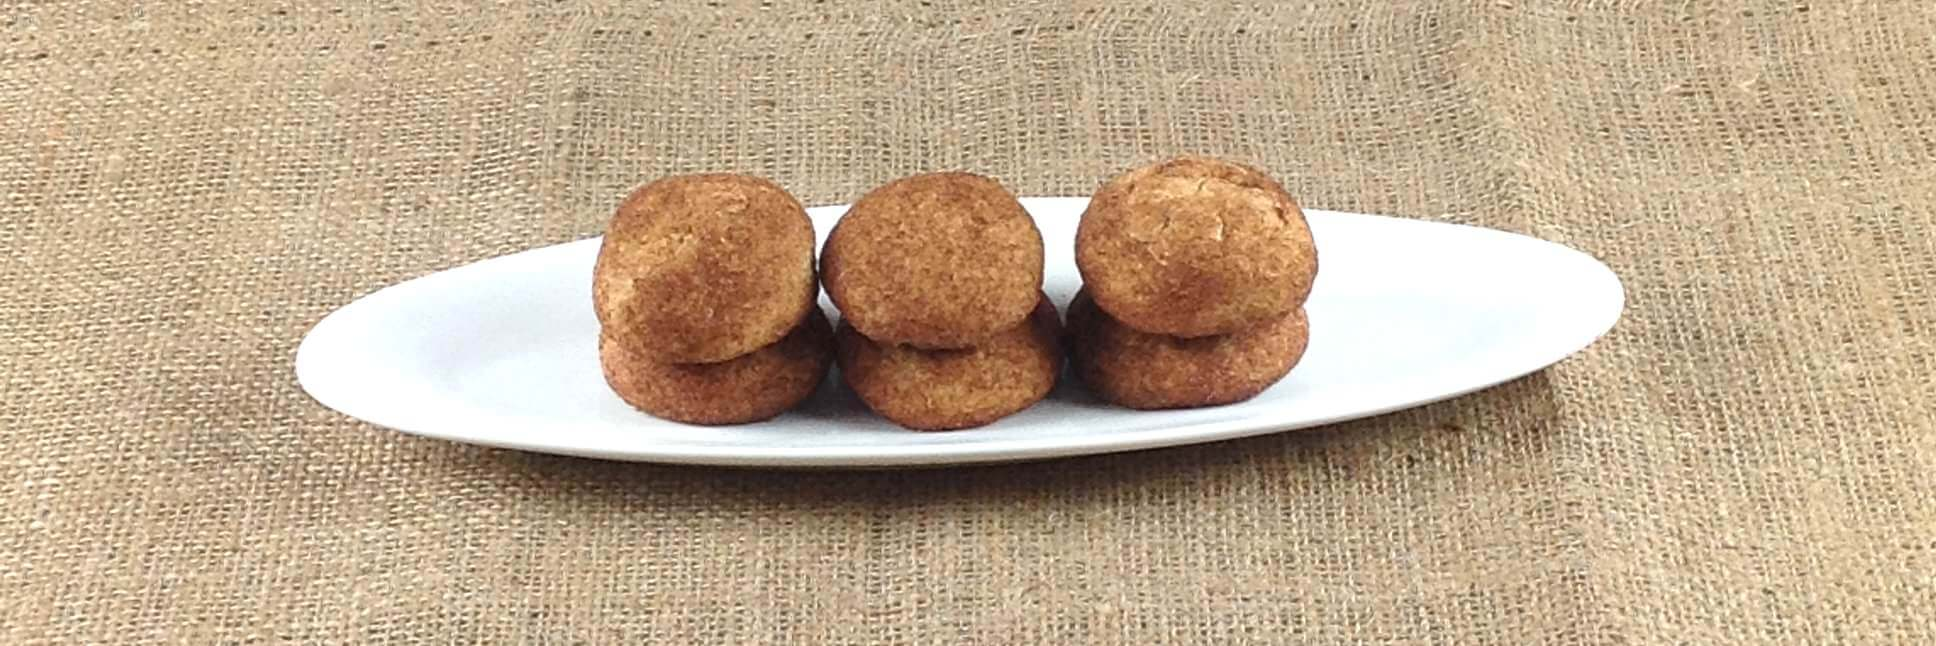 Picture of oval dish with snickerdoodles